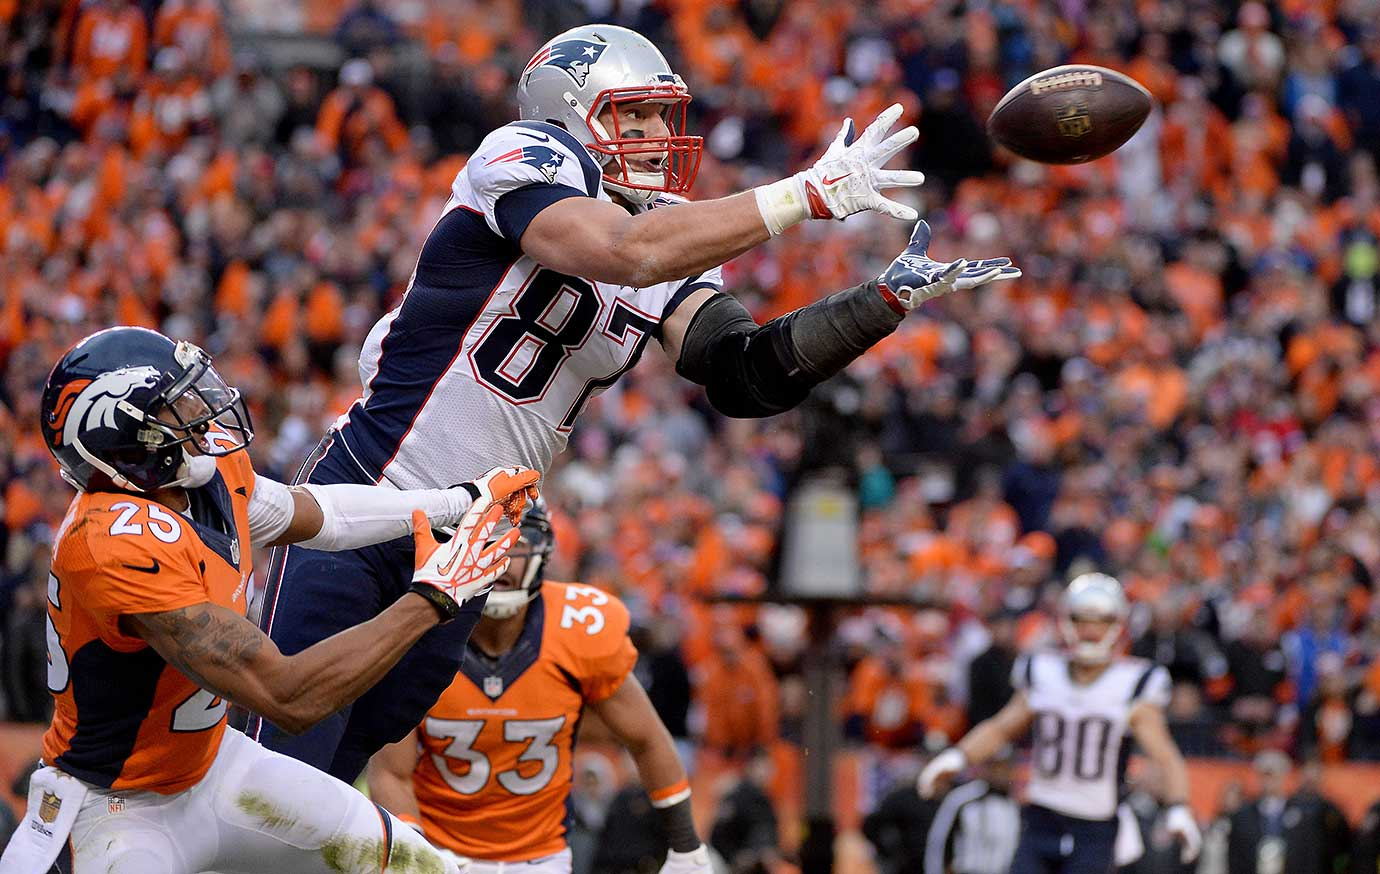 Rob Gronkowski broke free from double coverage in the back of the end zone on fourth down to score a touchdown that brought the Patriots within a two-point conversion of forcing overtime.